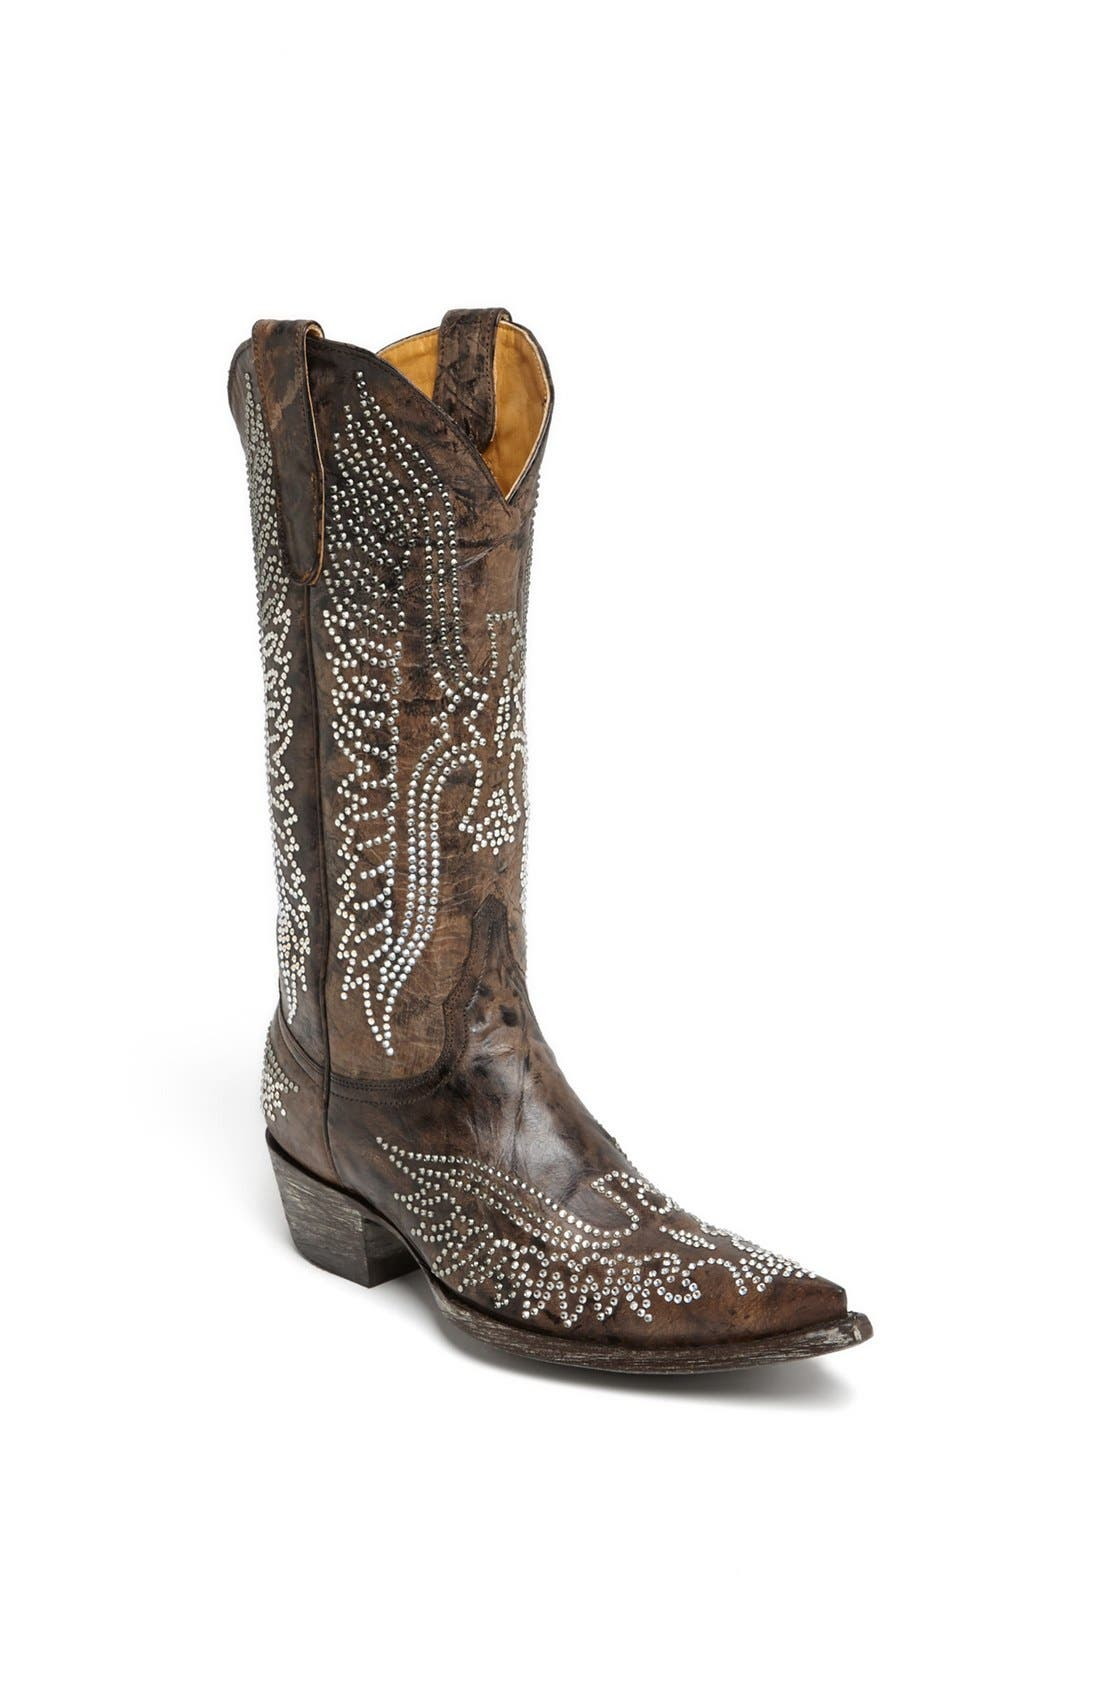 Main Image - Old Gringo 'Eagle Swarovski' Boot